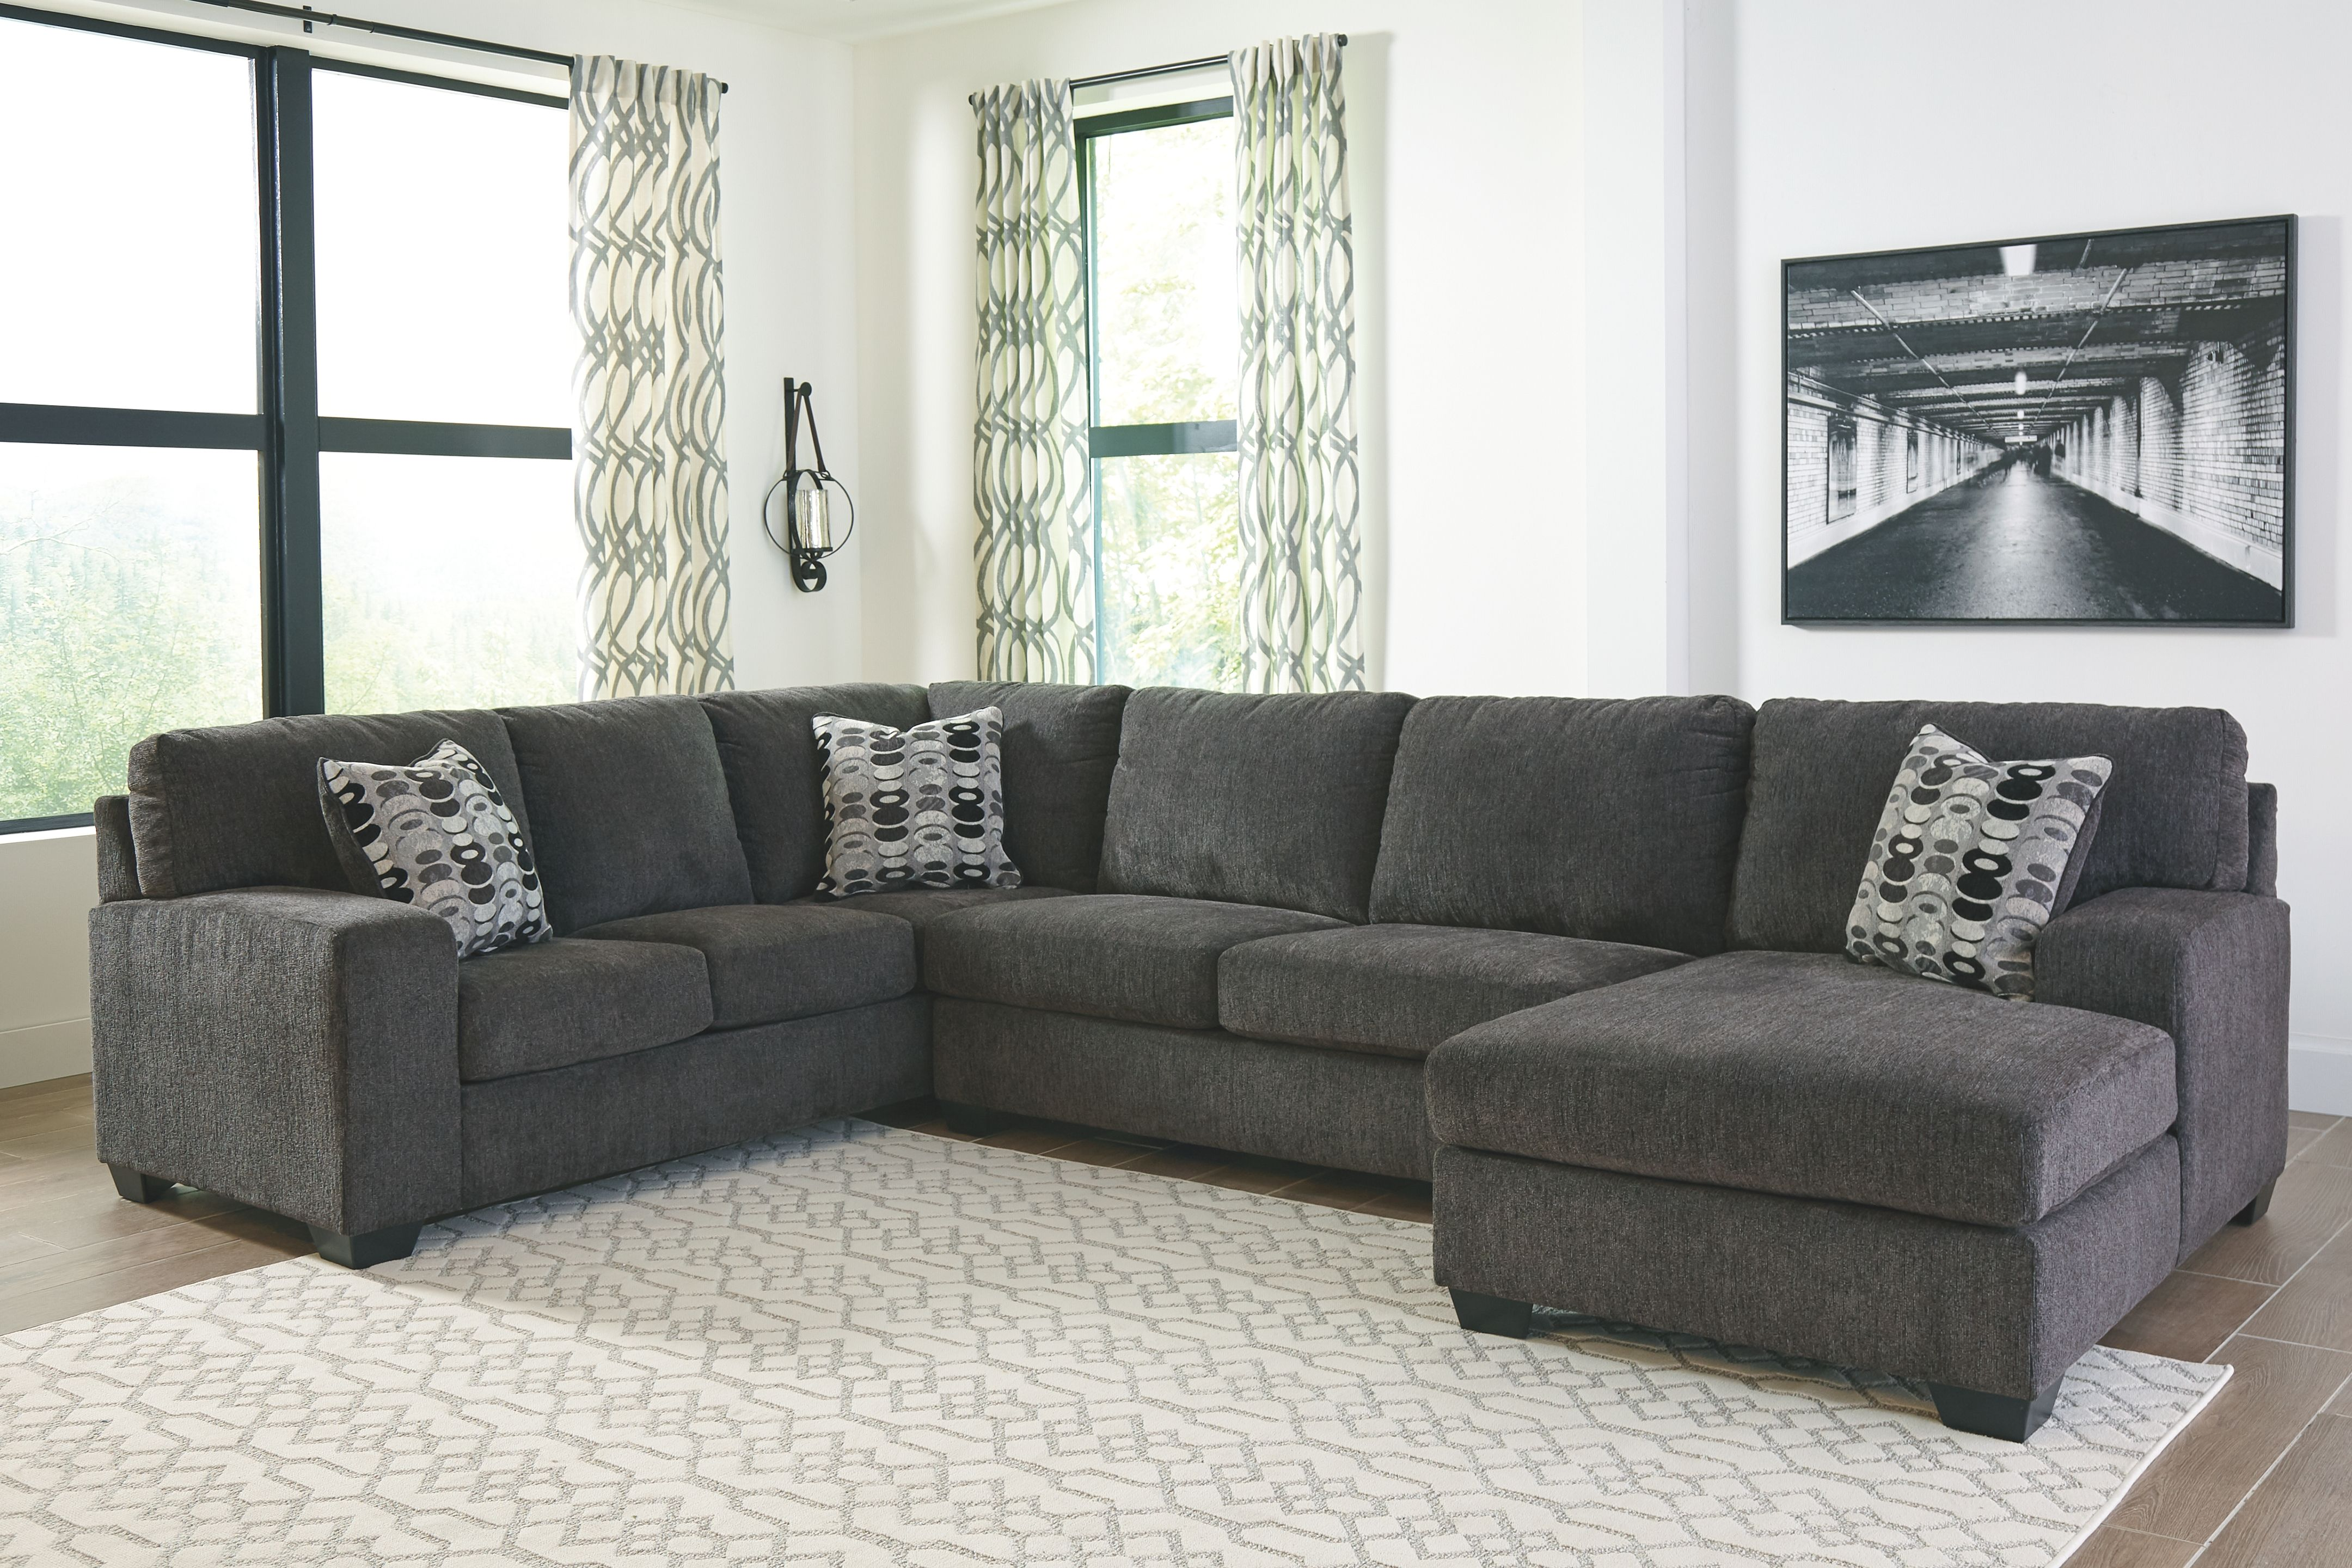 Sofa For Living Room Online Ballinasloe 3 Piece Sectional Smoke Products In 2019